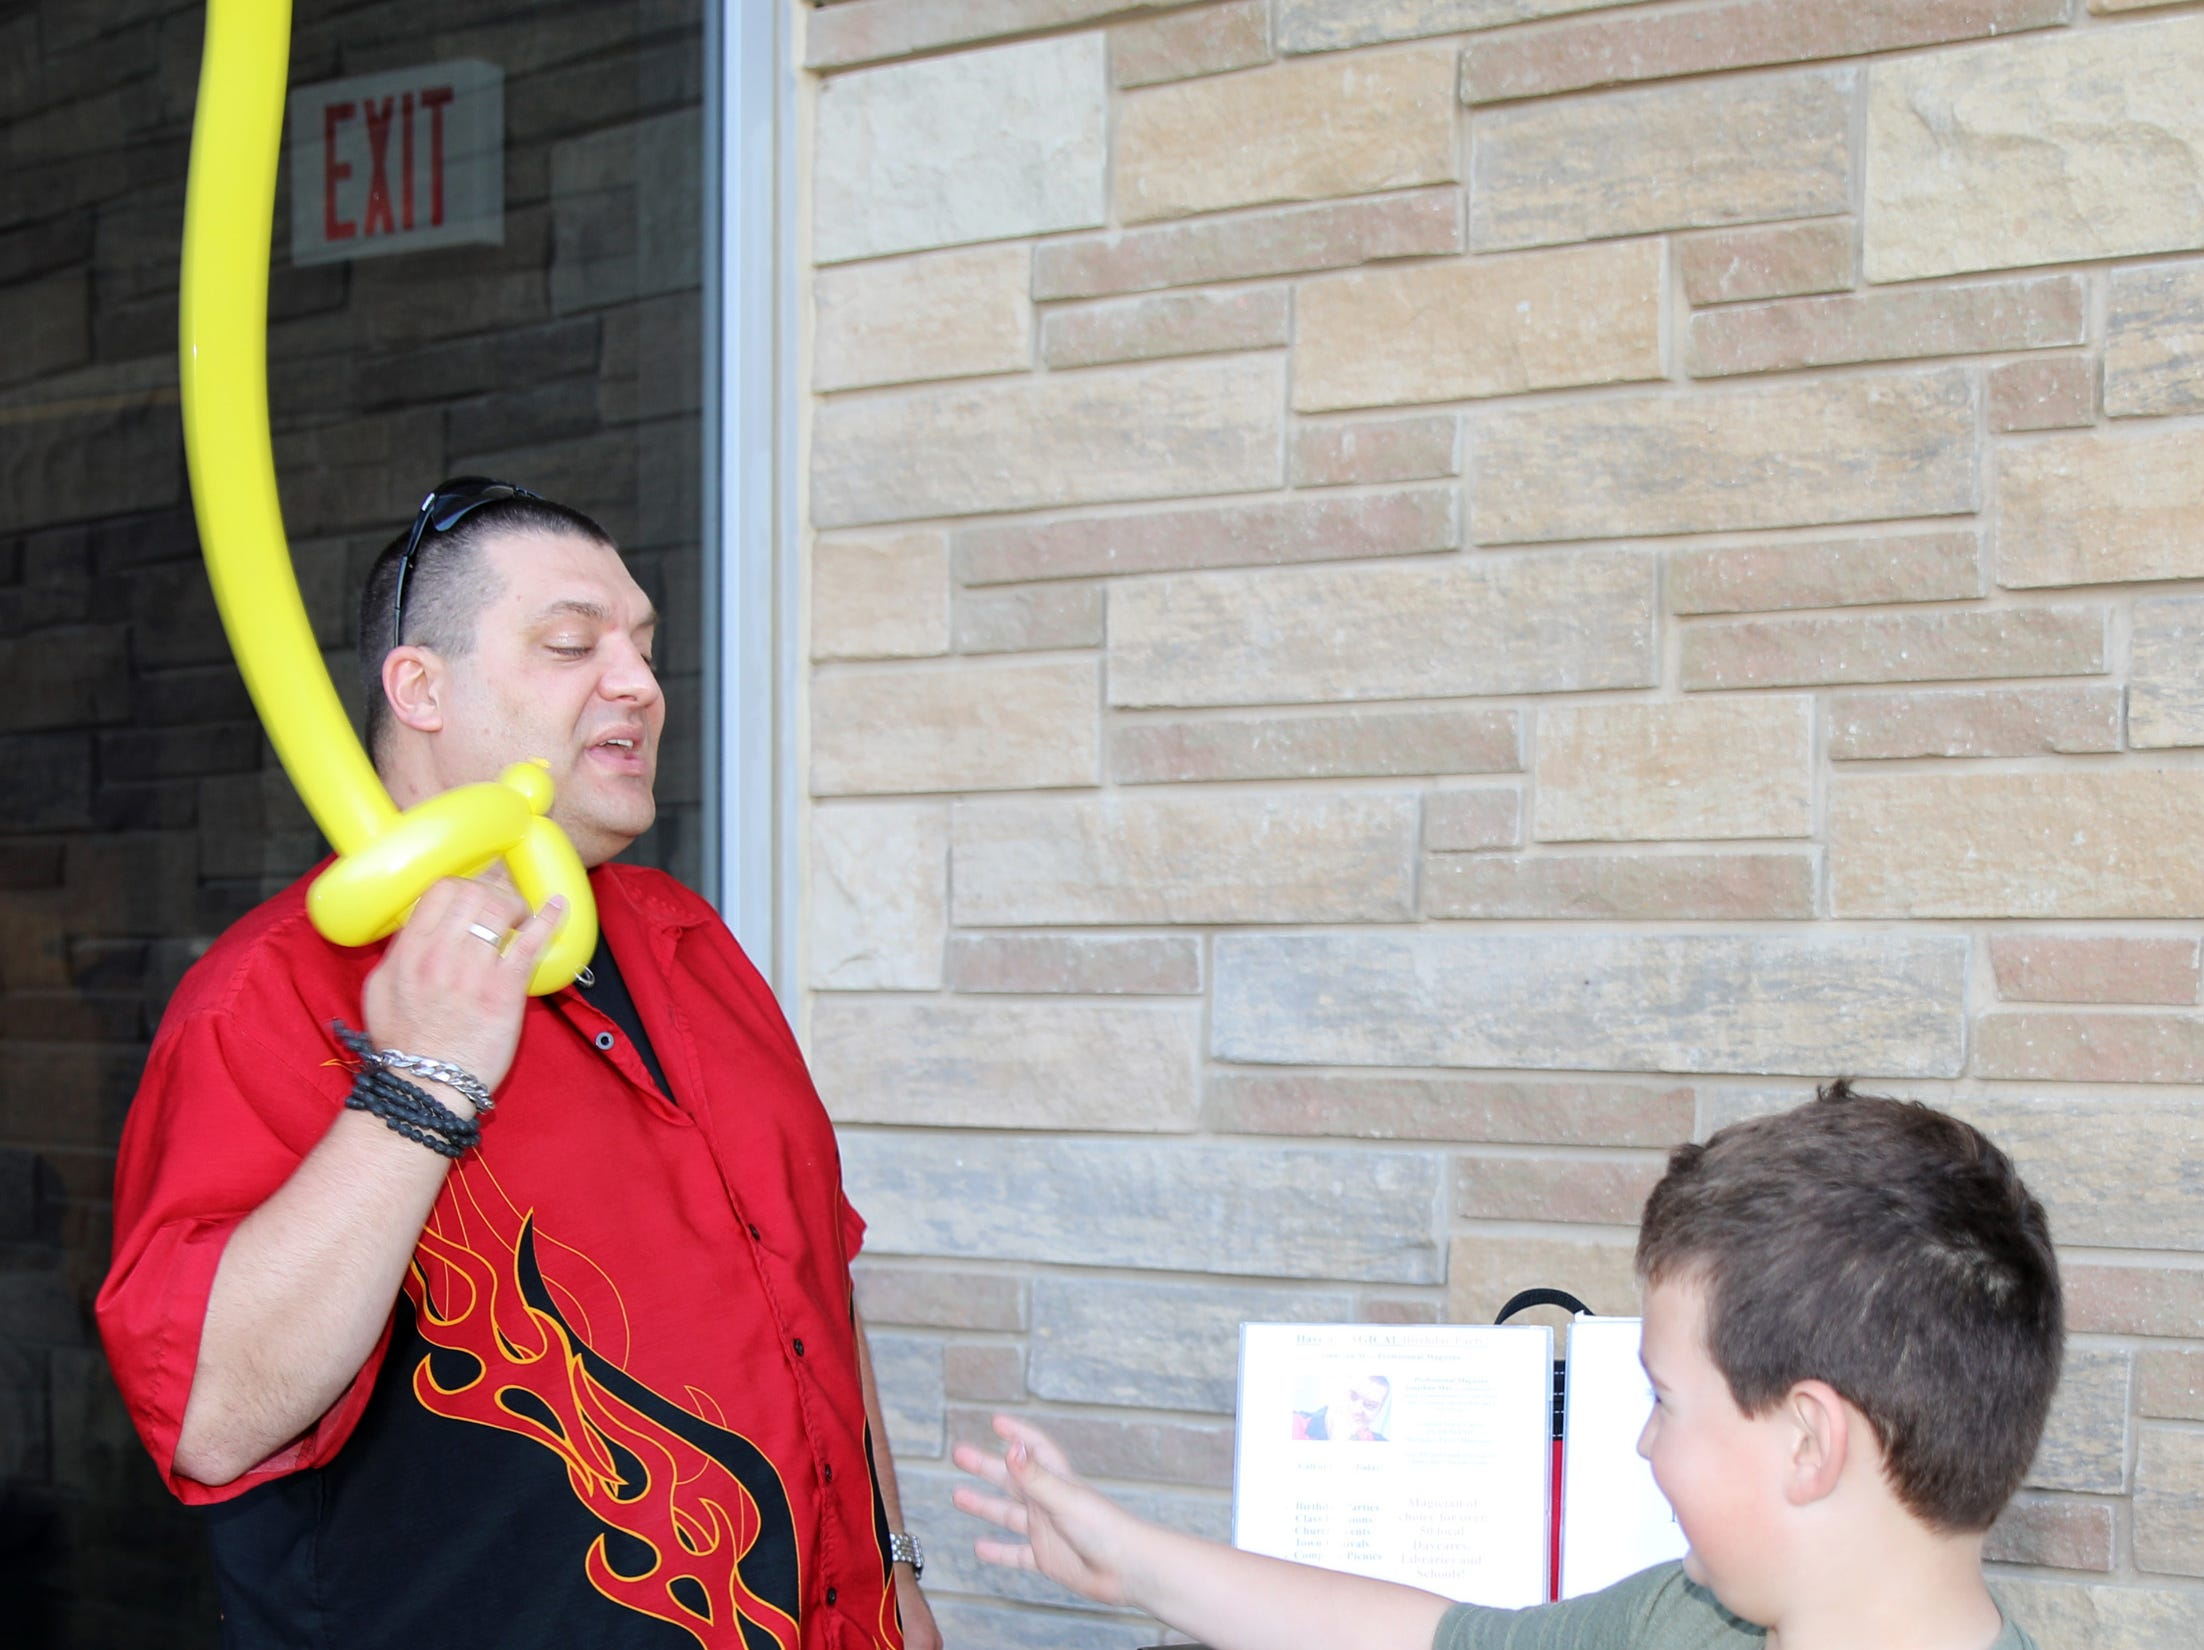 Professional Magician Jonathan May prepares to hand ower the balloon sword to William Barlow, 8, of Ankeny during the Ankeny Police Week Community Picnic on Tuesday, May 14, 2019 at the Ankeny Police Headquarters located at 411 SW Ordnance Road. The event featured a tour of the police station, magician Jonathon May, free Chick Fil-A sandwiches for the first 1,000 guests, free Kona Ice, temporary tattoos, and a great opportunity to meet the officers who protect and serve the city of Ankeny.